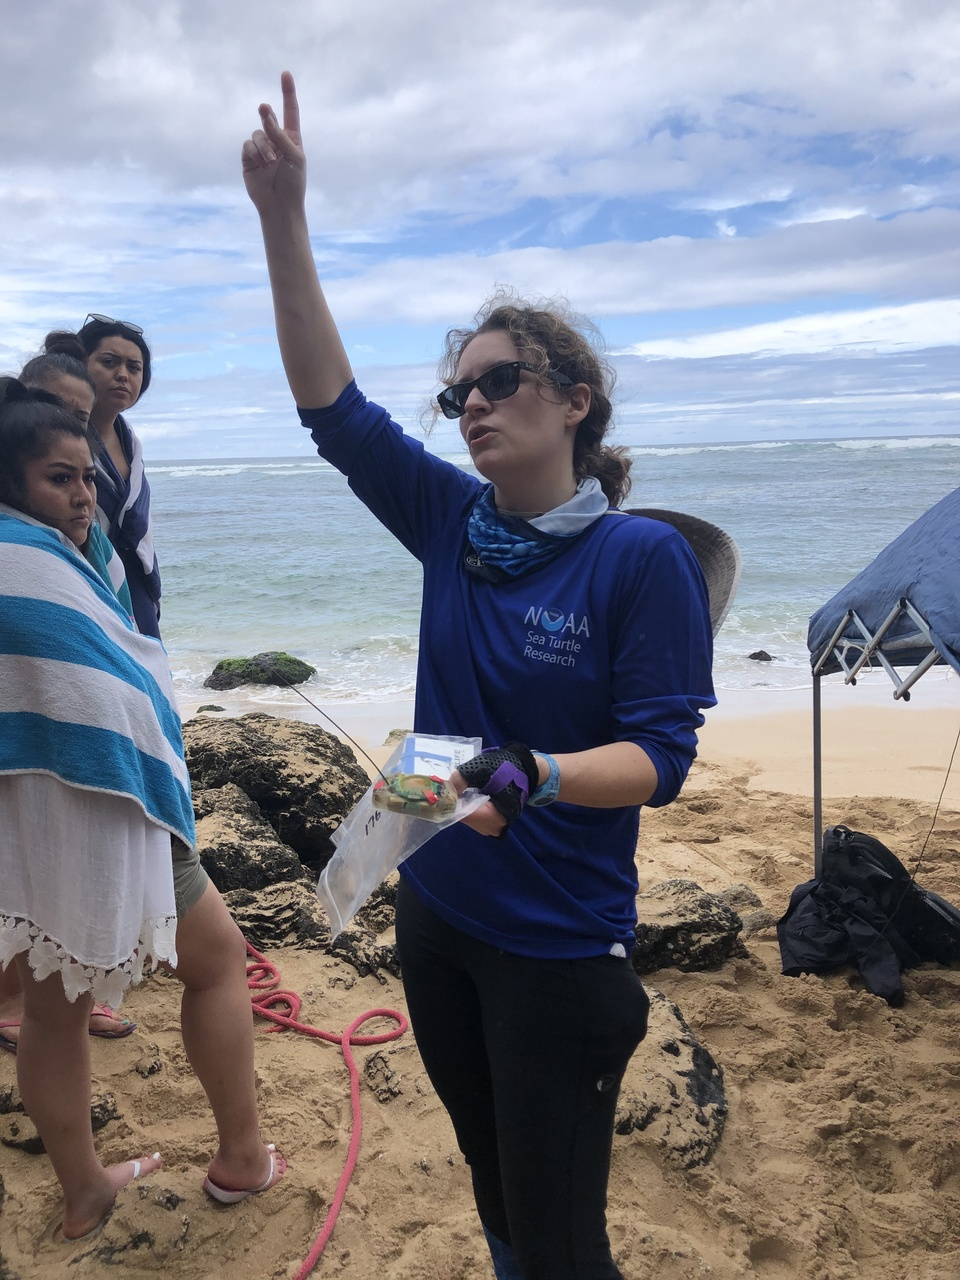 Scientist raising hand in air and speaking on the beach.